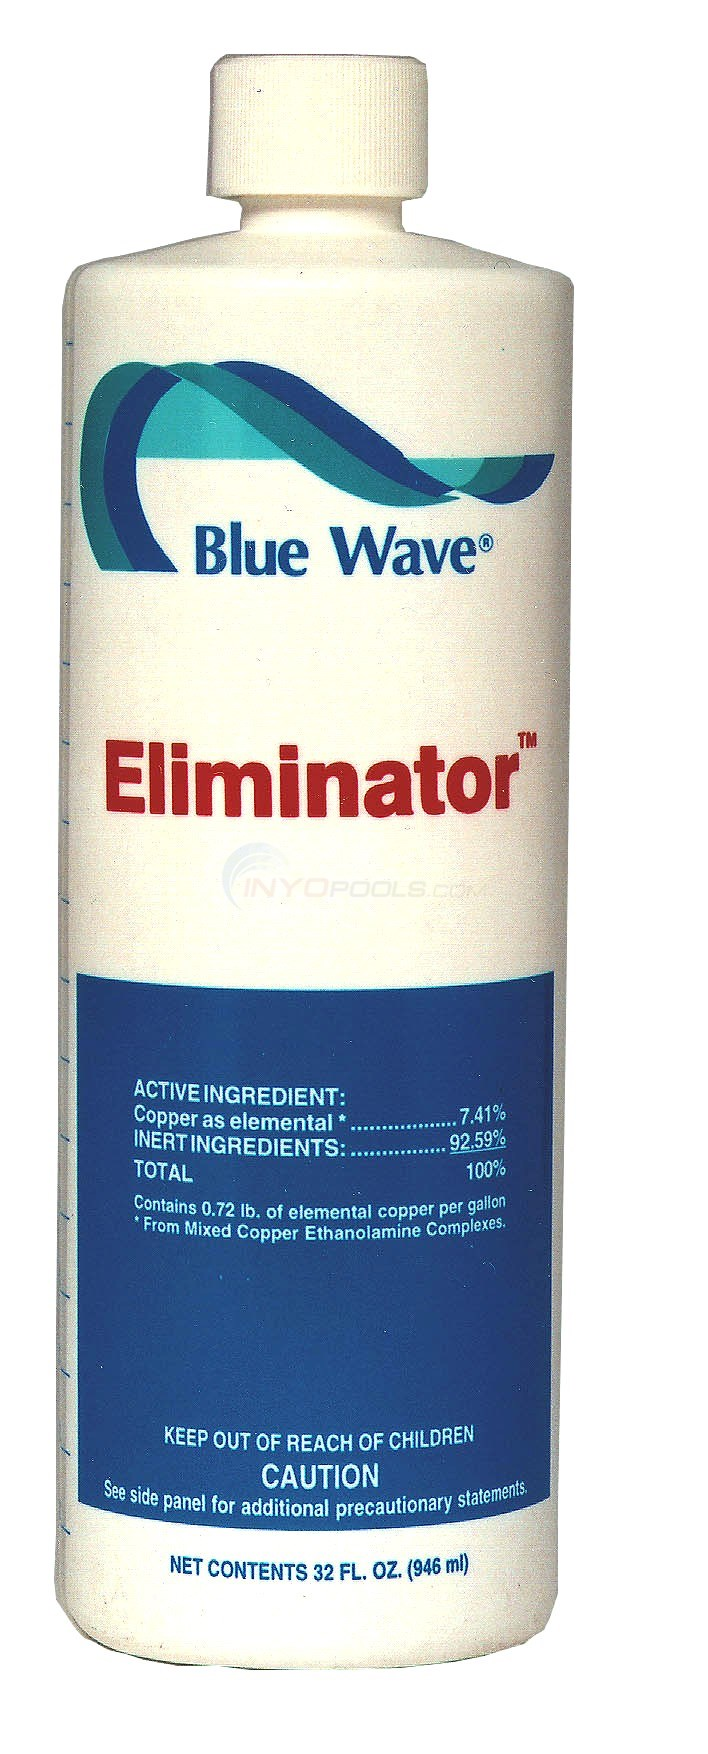 Blue Wave Eliminator (7.41% Copper) (1 Qt) - NY110